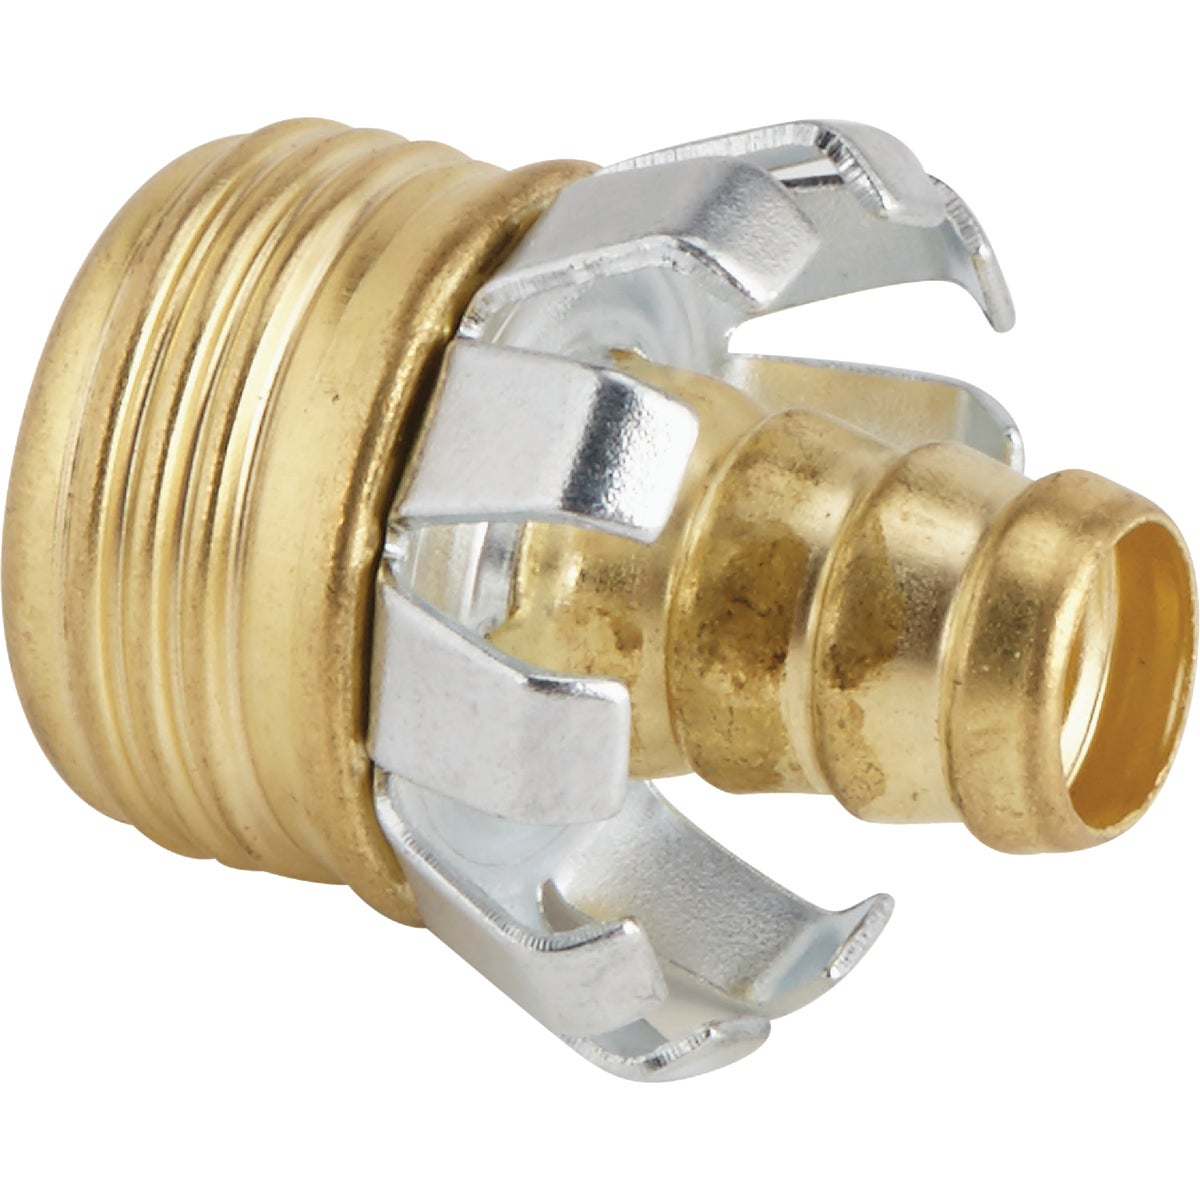 "1/2"" MALE BRASS HOSE END - DIBC12M by Bosch G W"